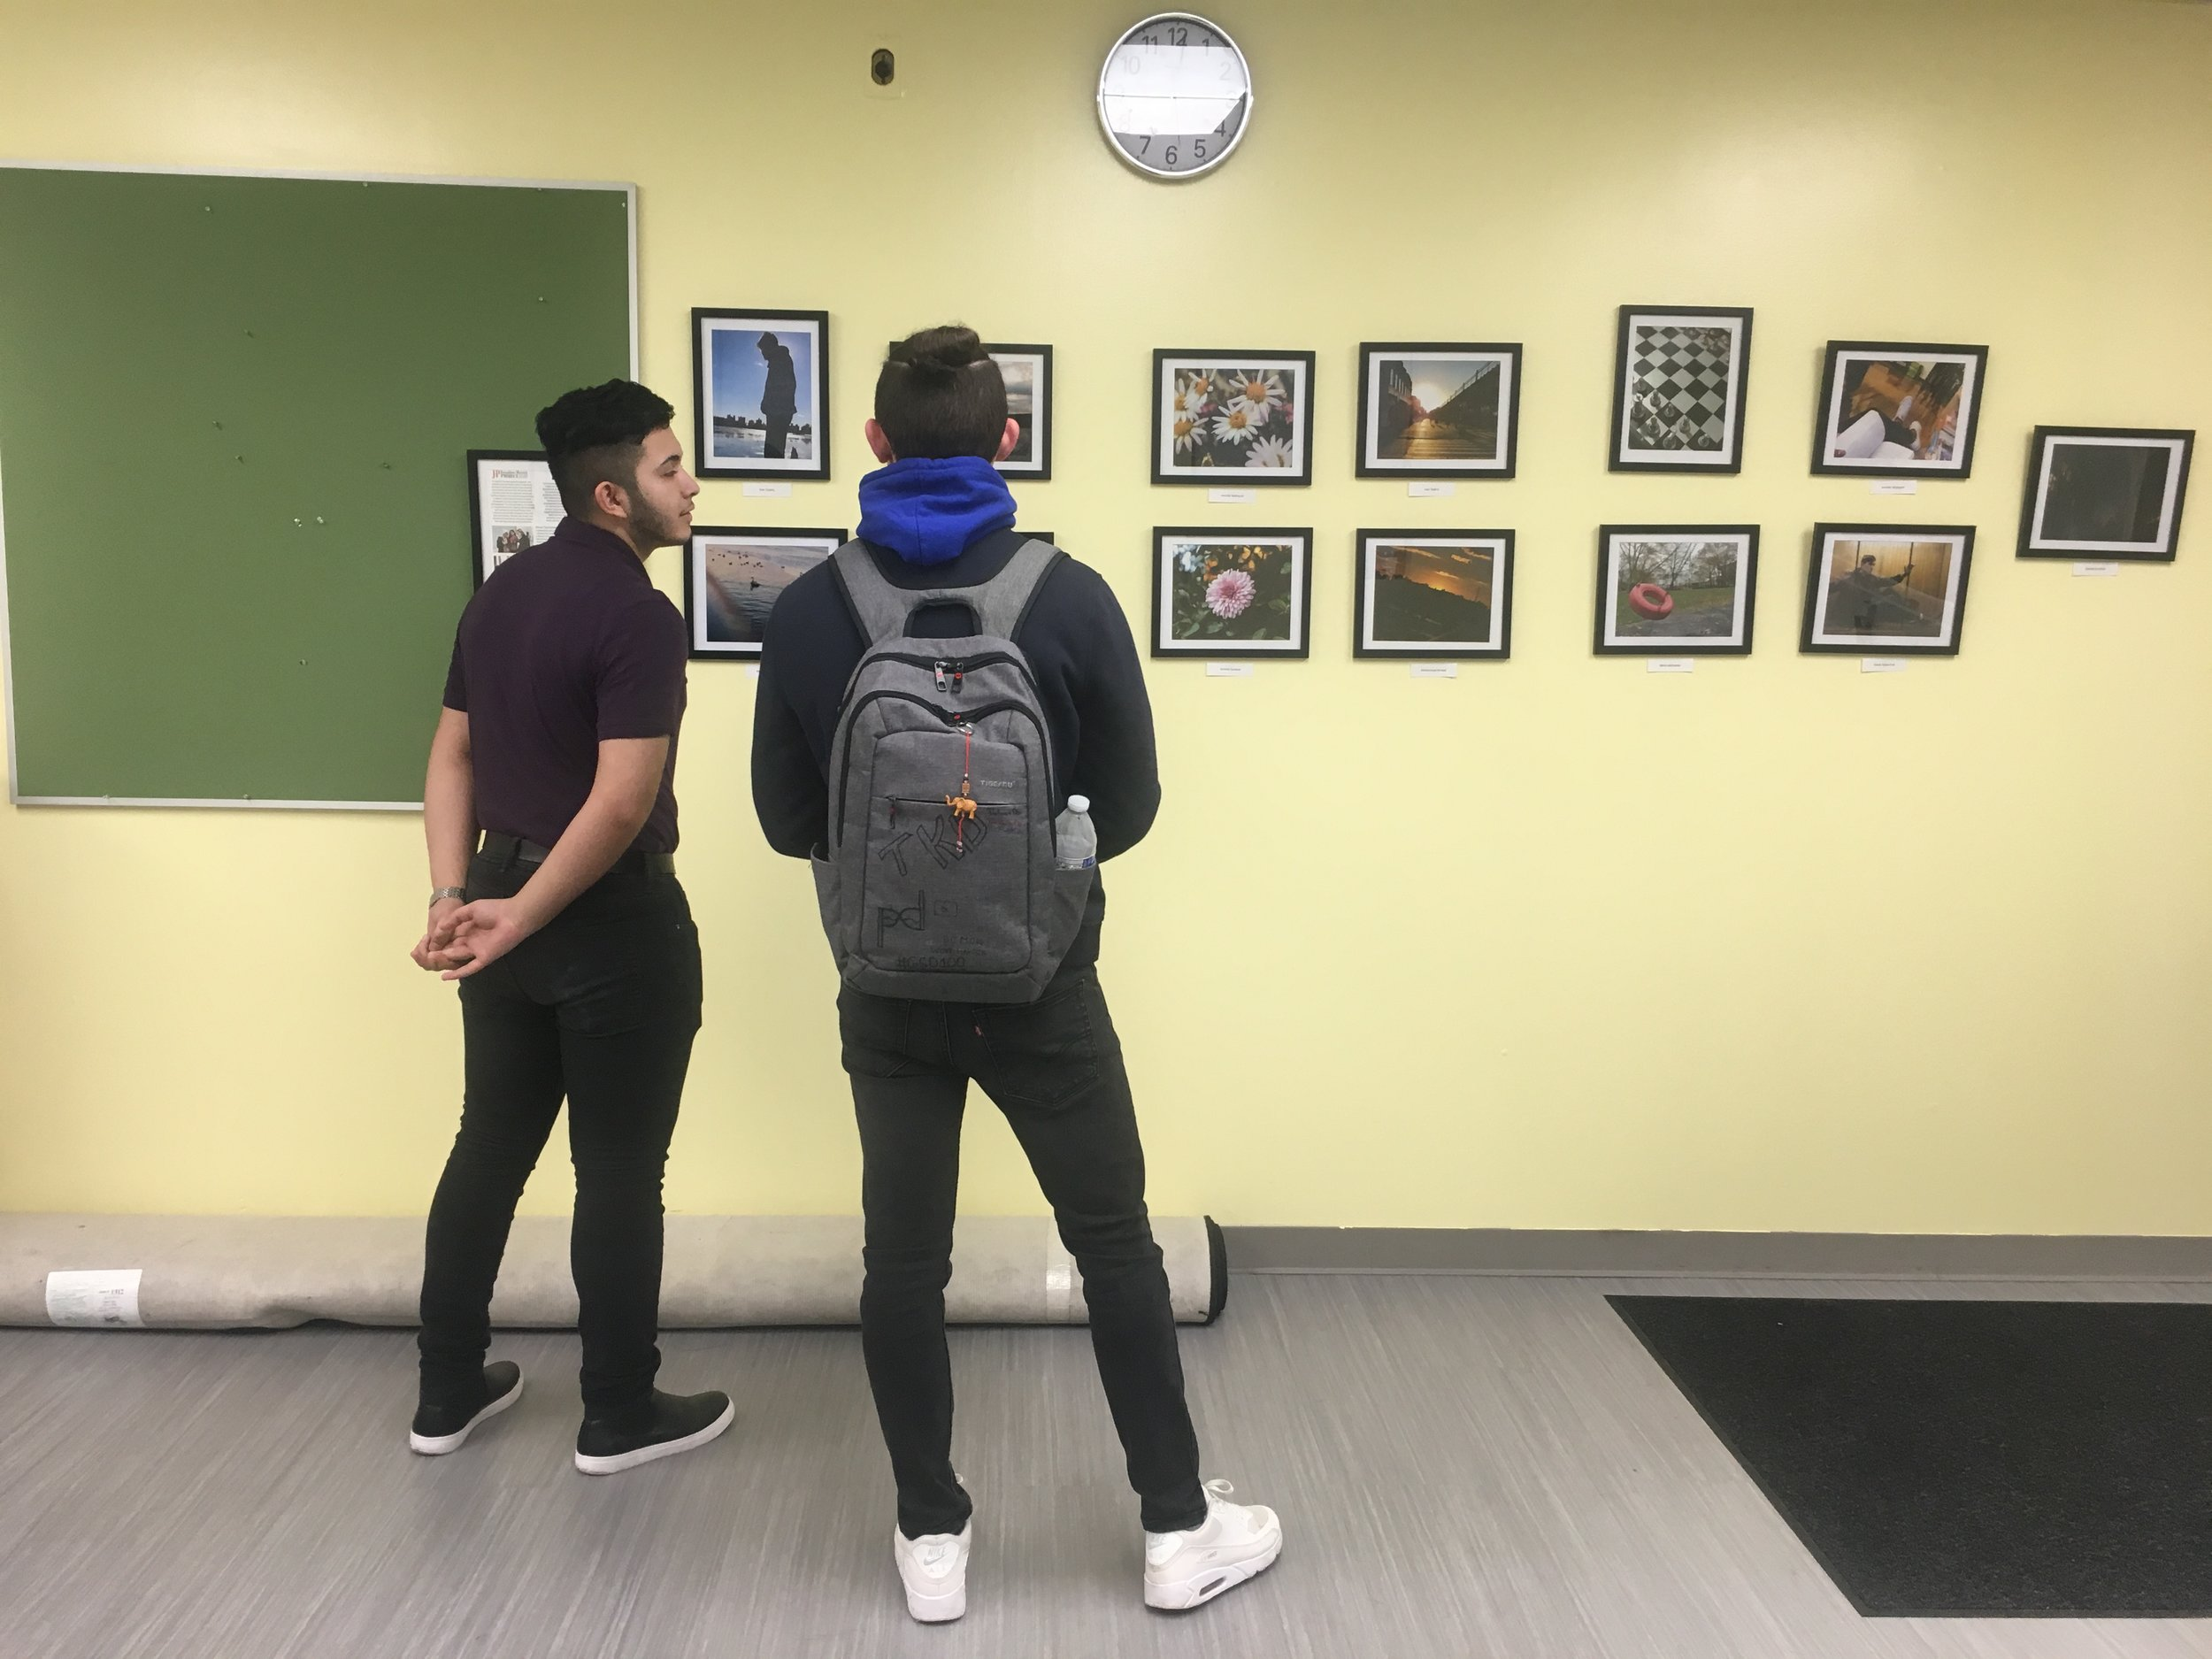 Uriel (left) speaking with one of the student photographers at the exhibition for the International High School at Lafayette on February 7, 2019.